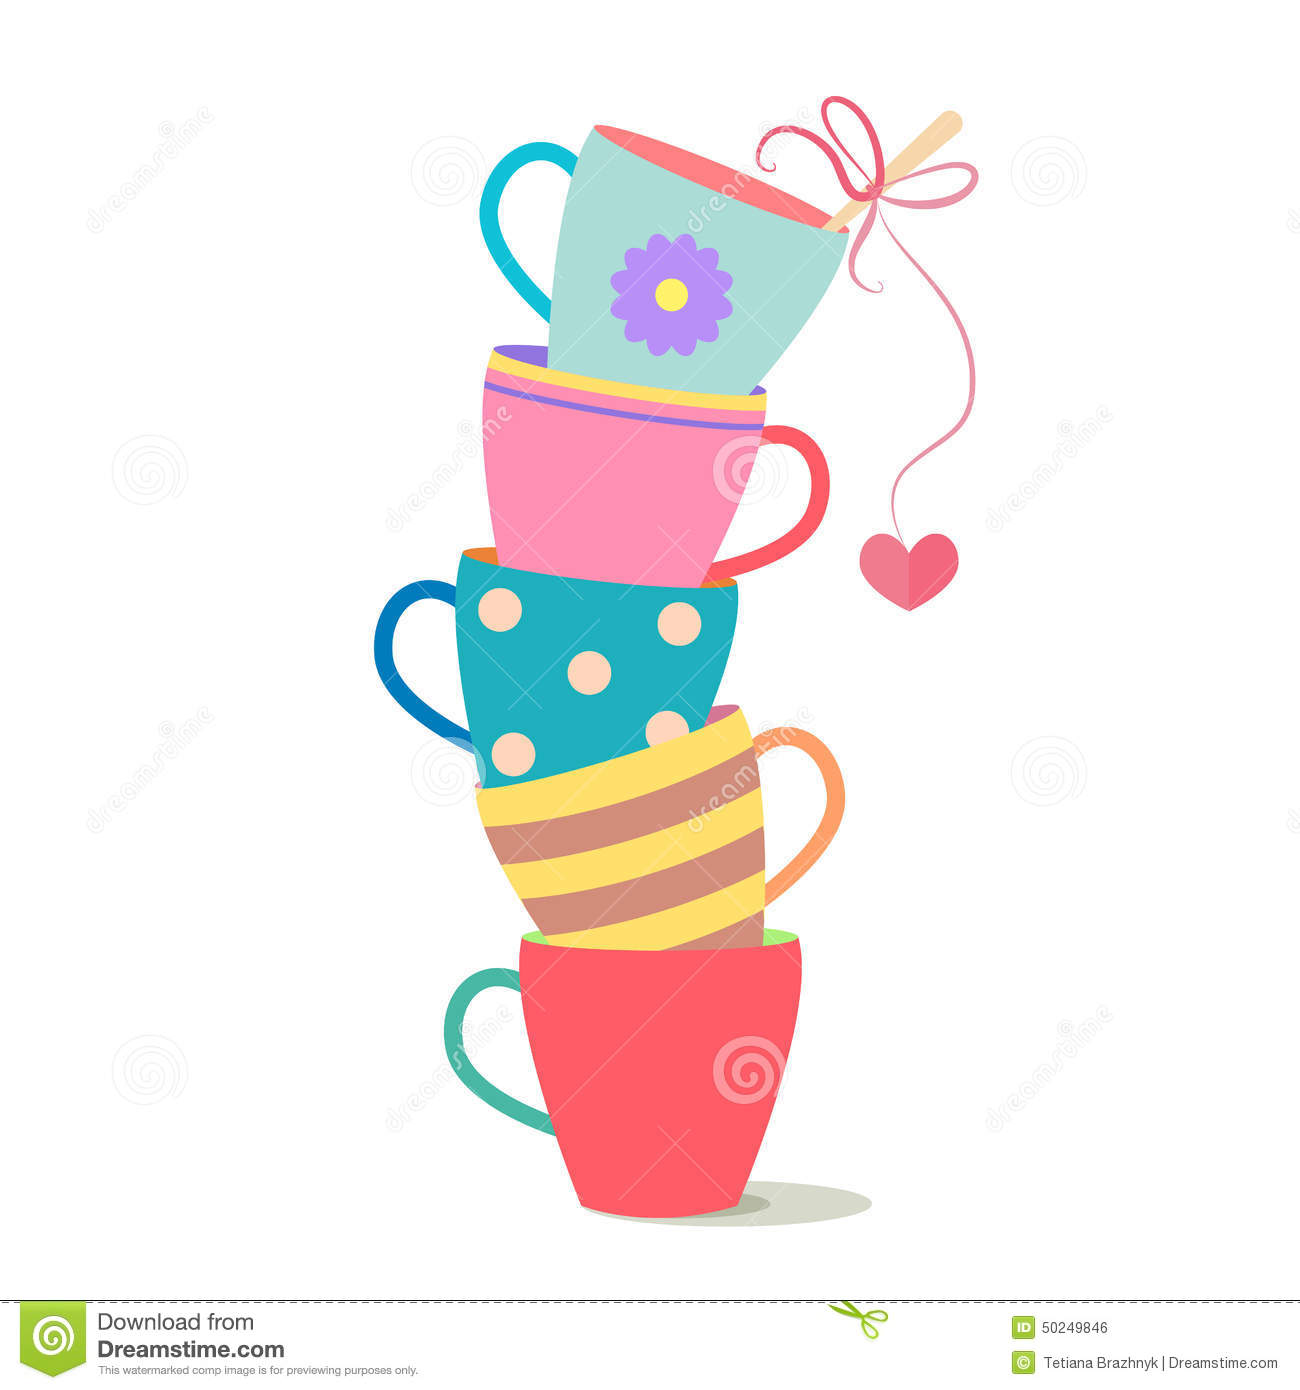 Tea Cup clipart #10, Download drawings